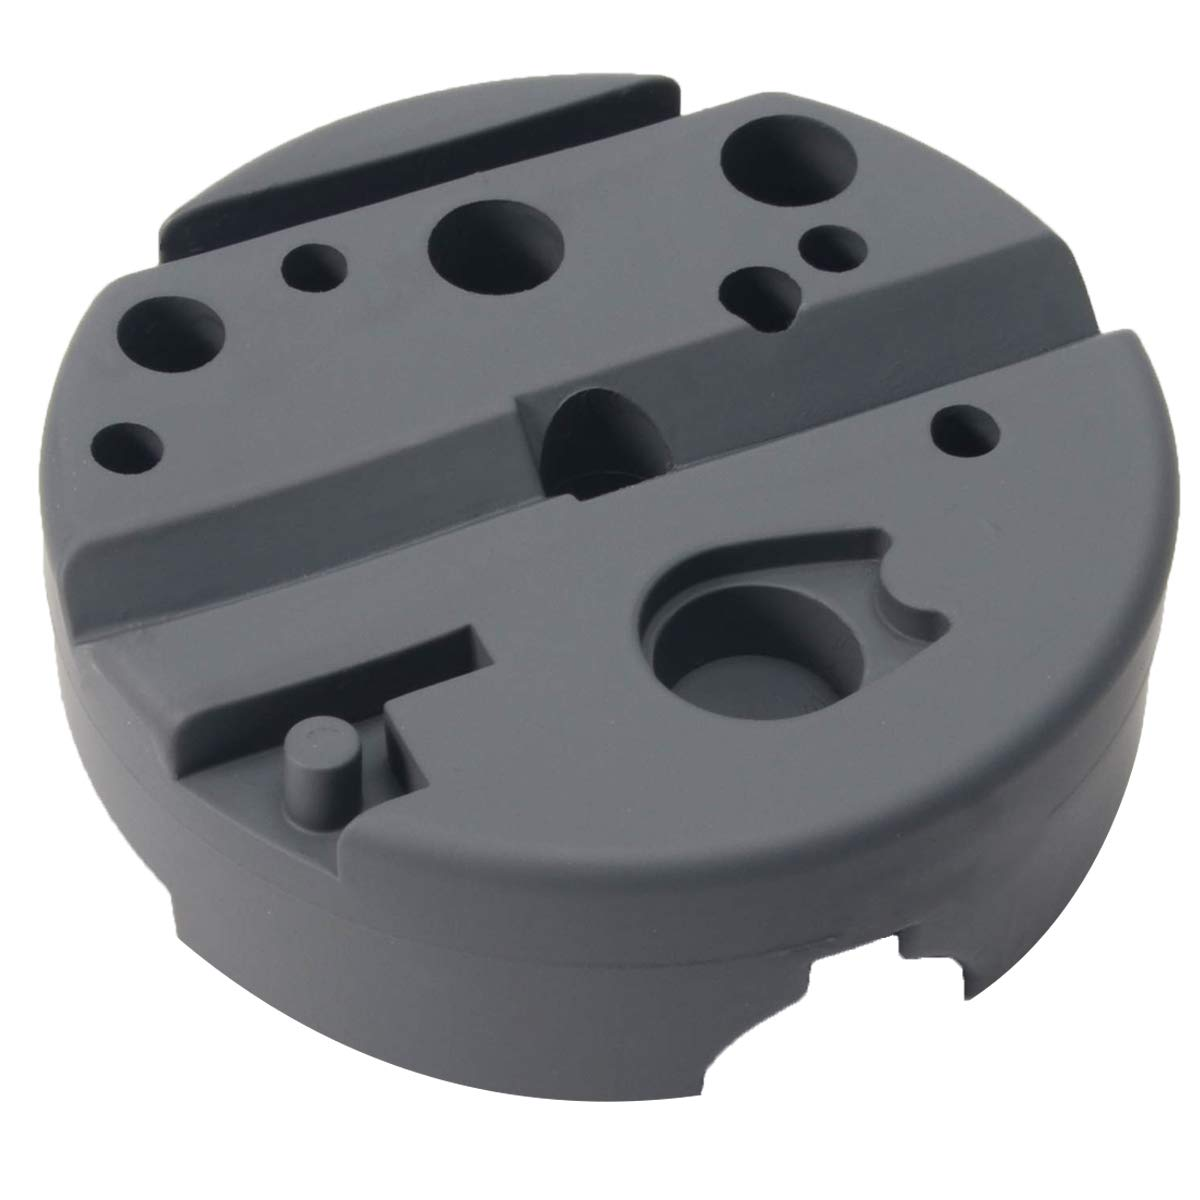 W WIREGEAR Bench Block Universal Gun Bench Block Two-Sided Tool with a Non-Slip Mat Made of Durable Material Ideal for M1911 10/22s Pistol and Other Handguns Use for Gunsmithing